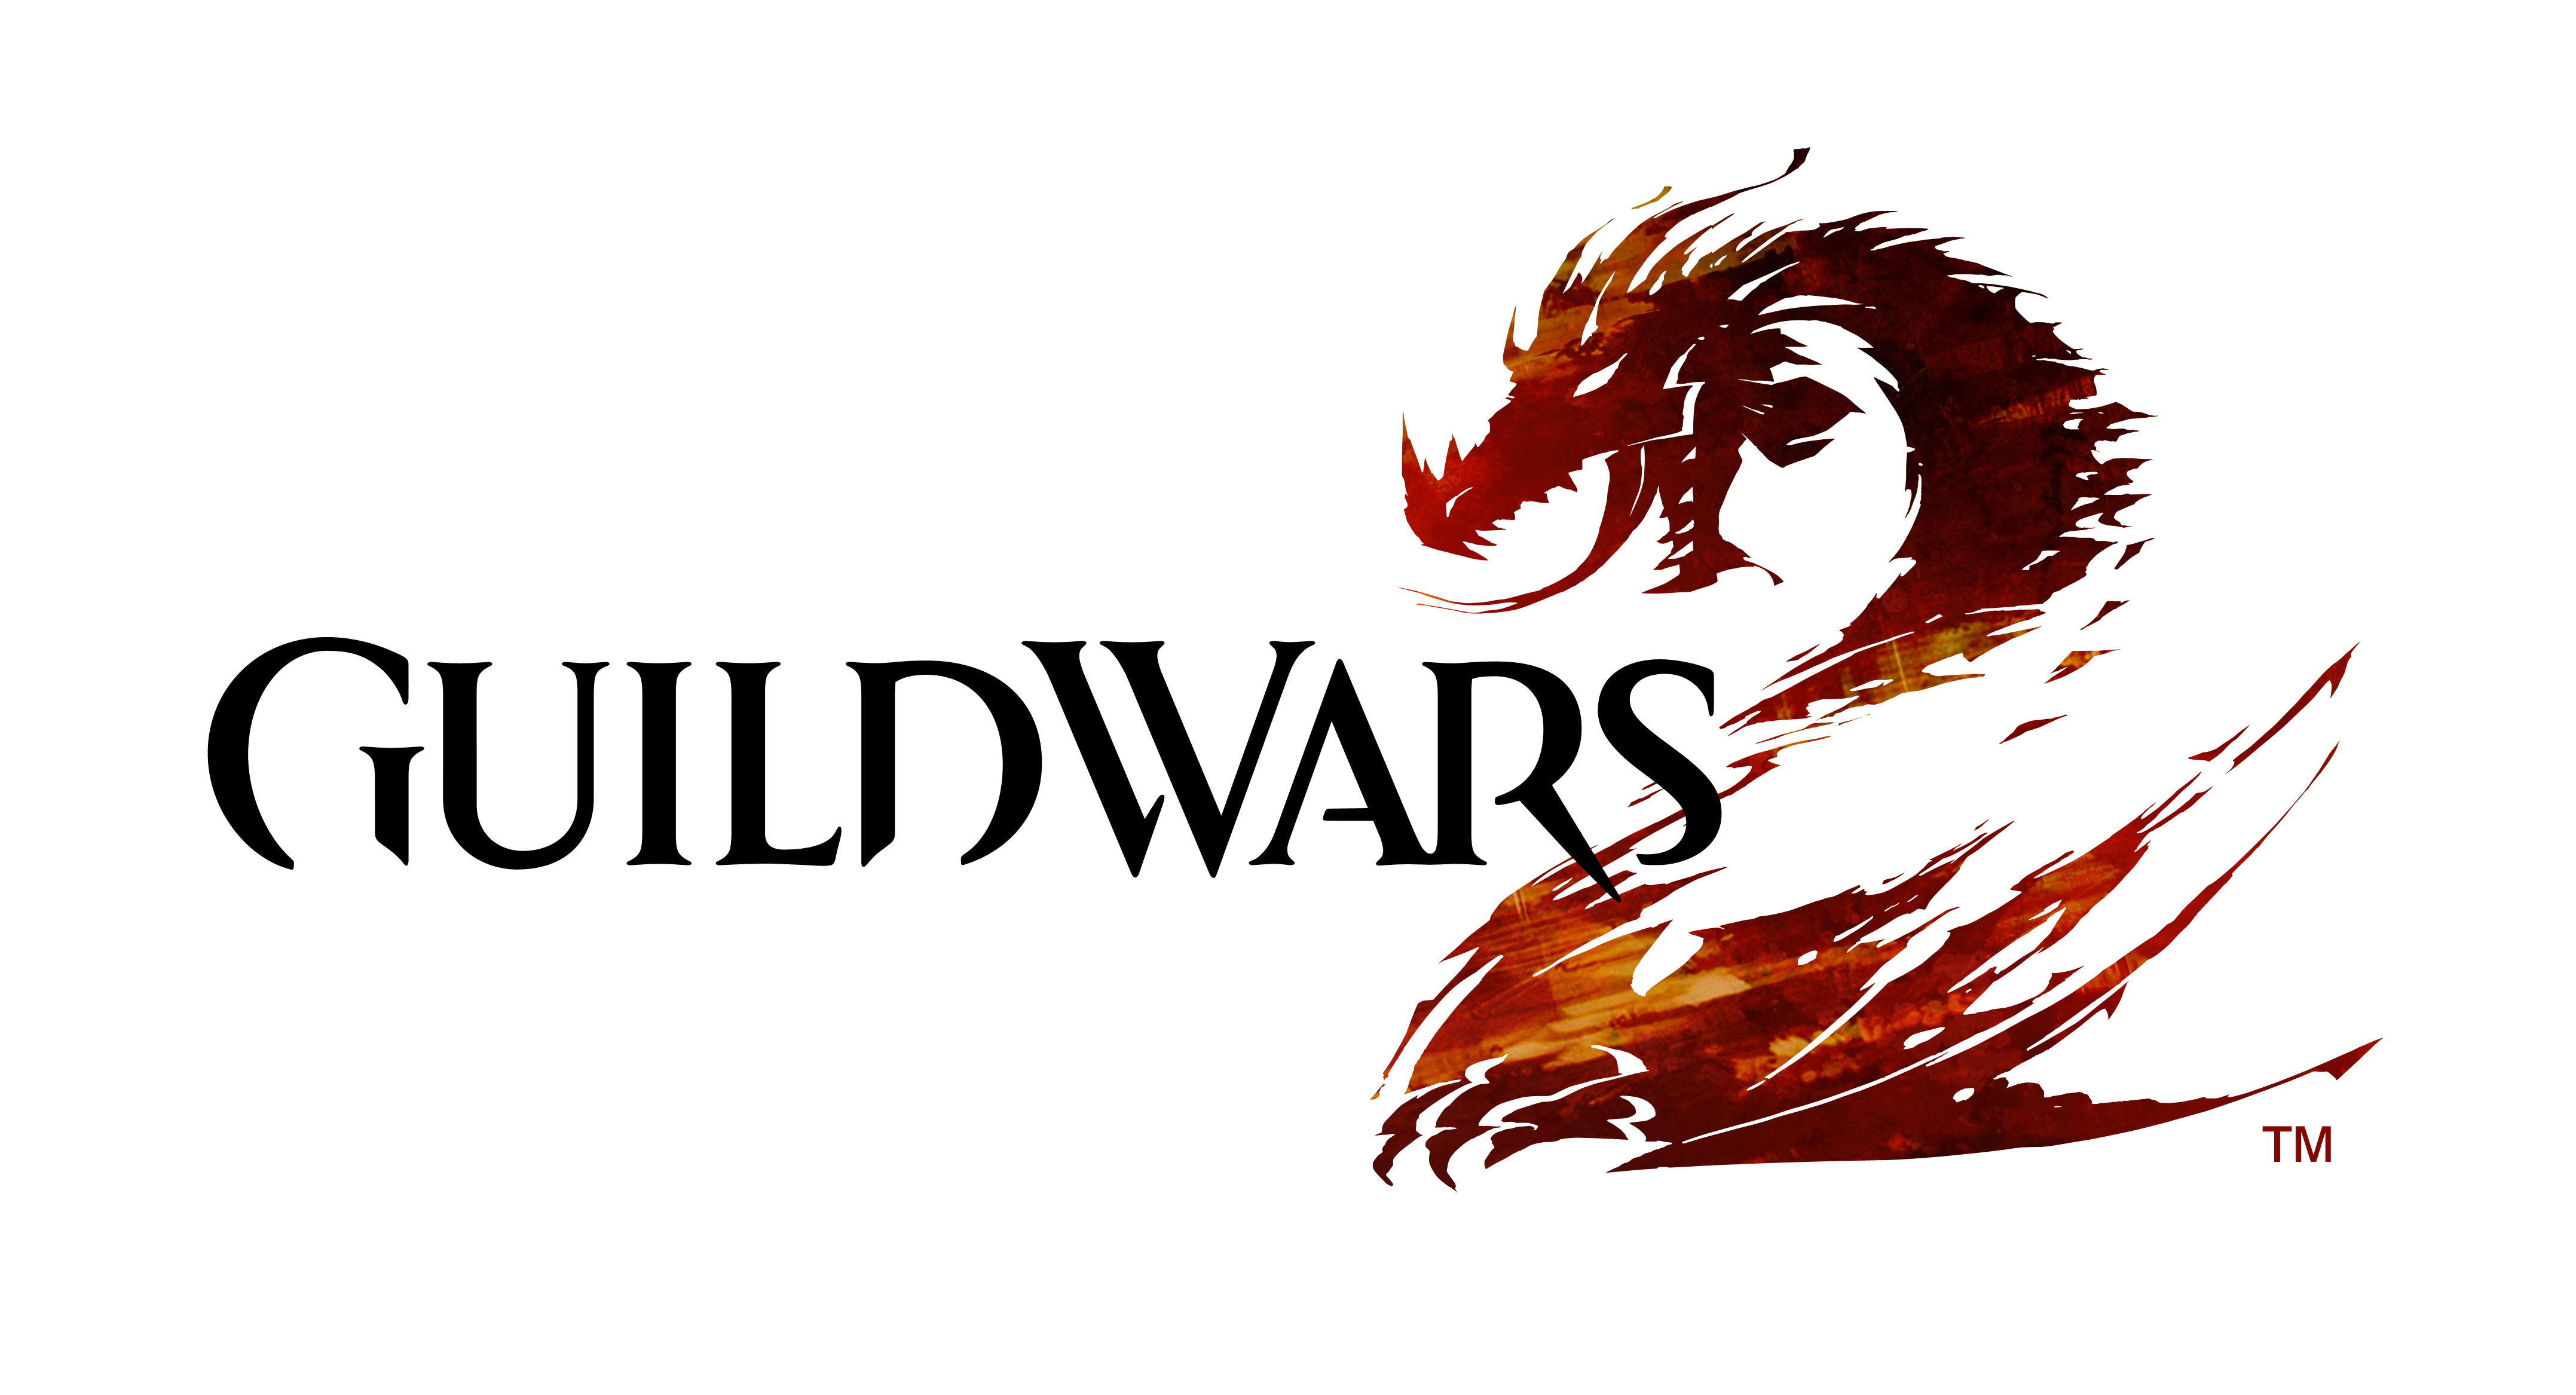 Guild wars 2 png. Best mmorpg if this